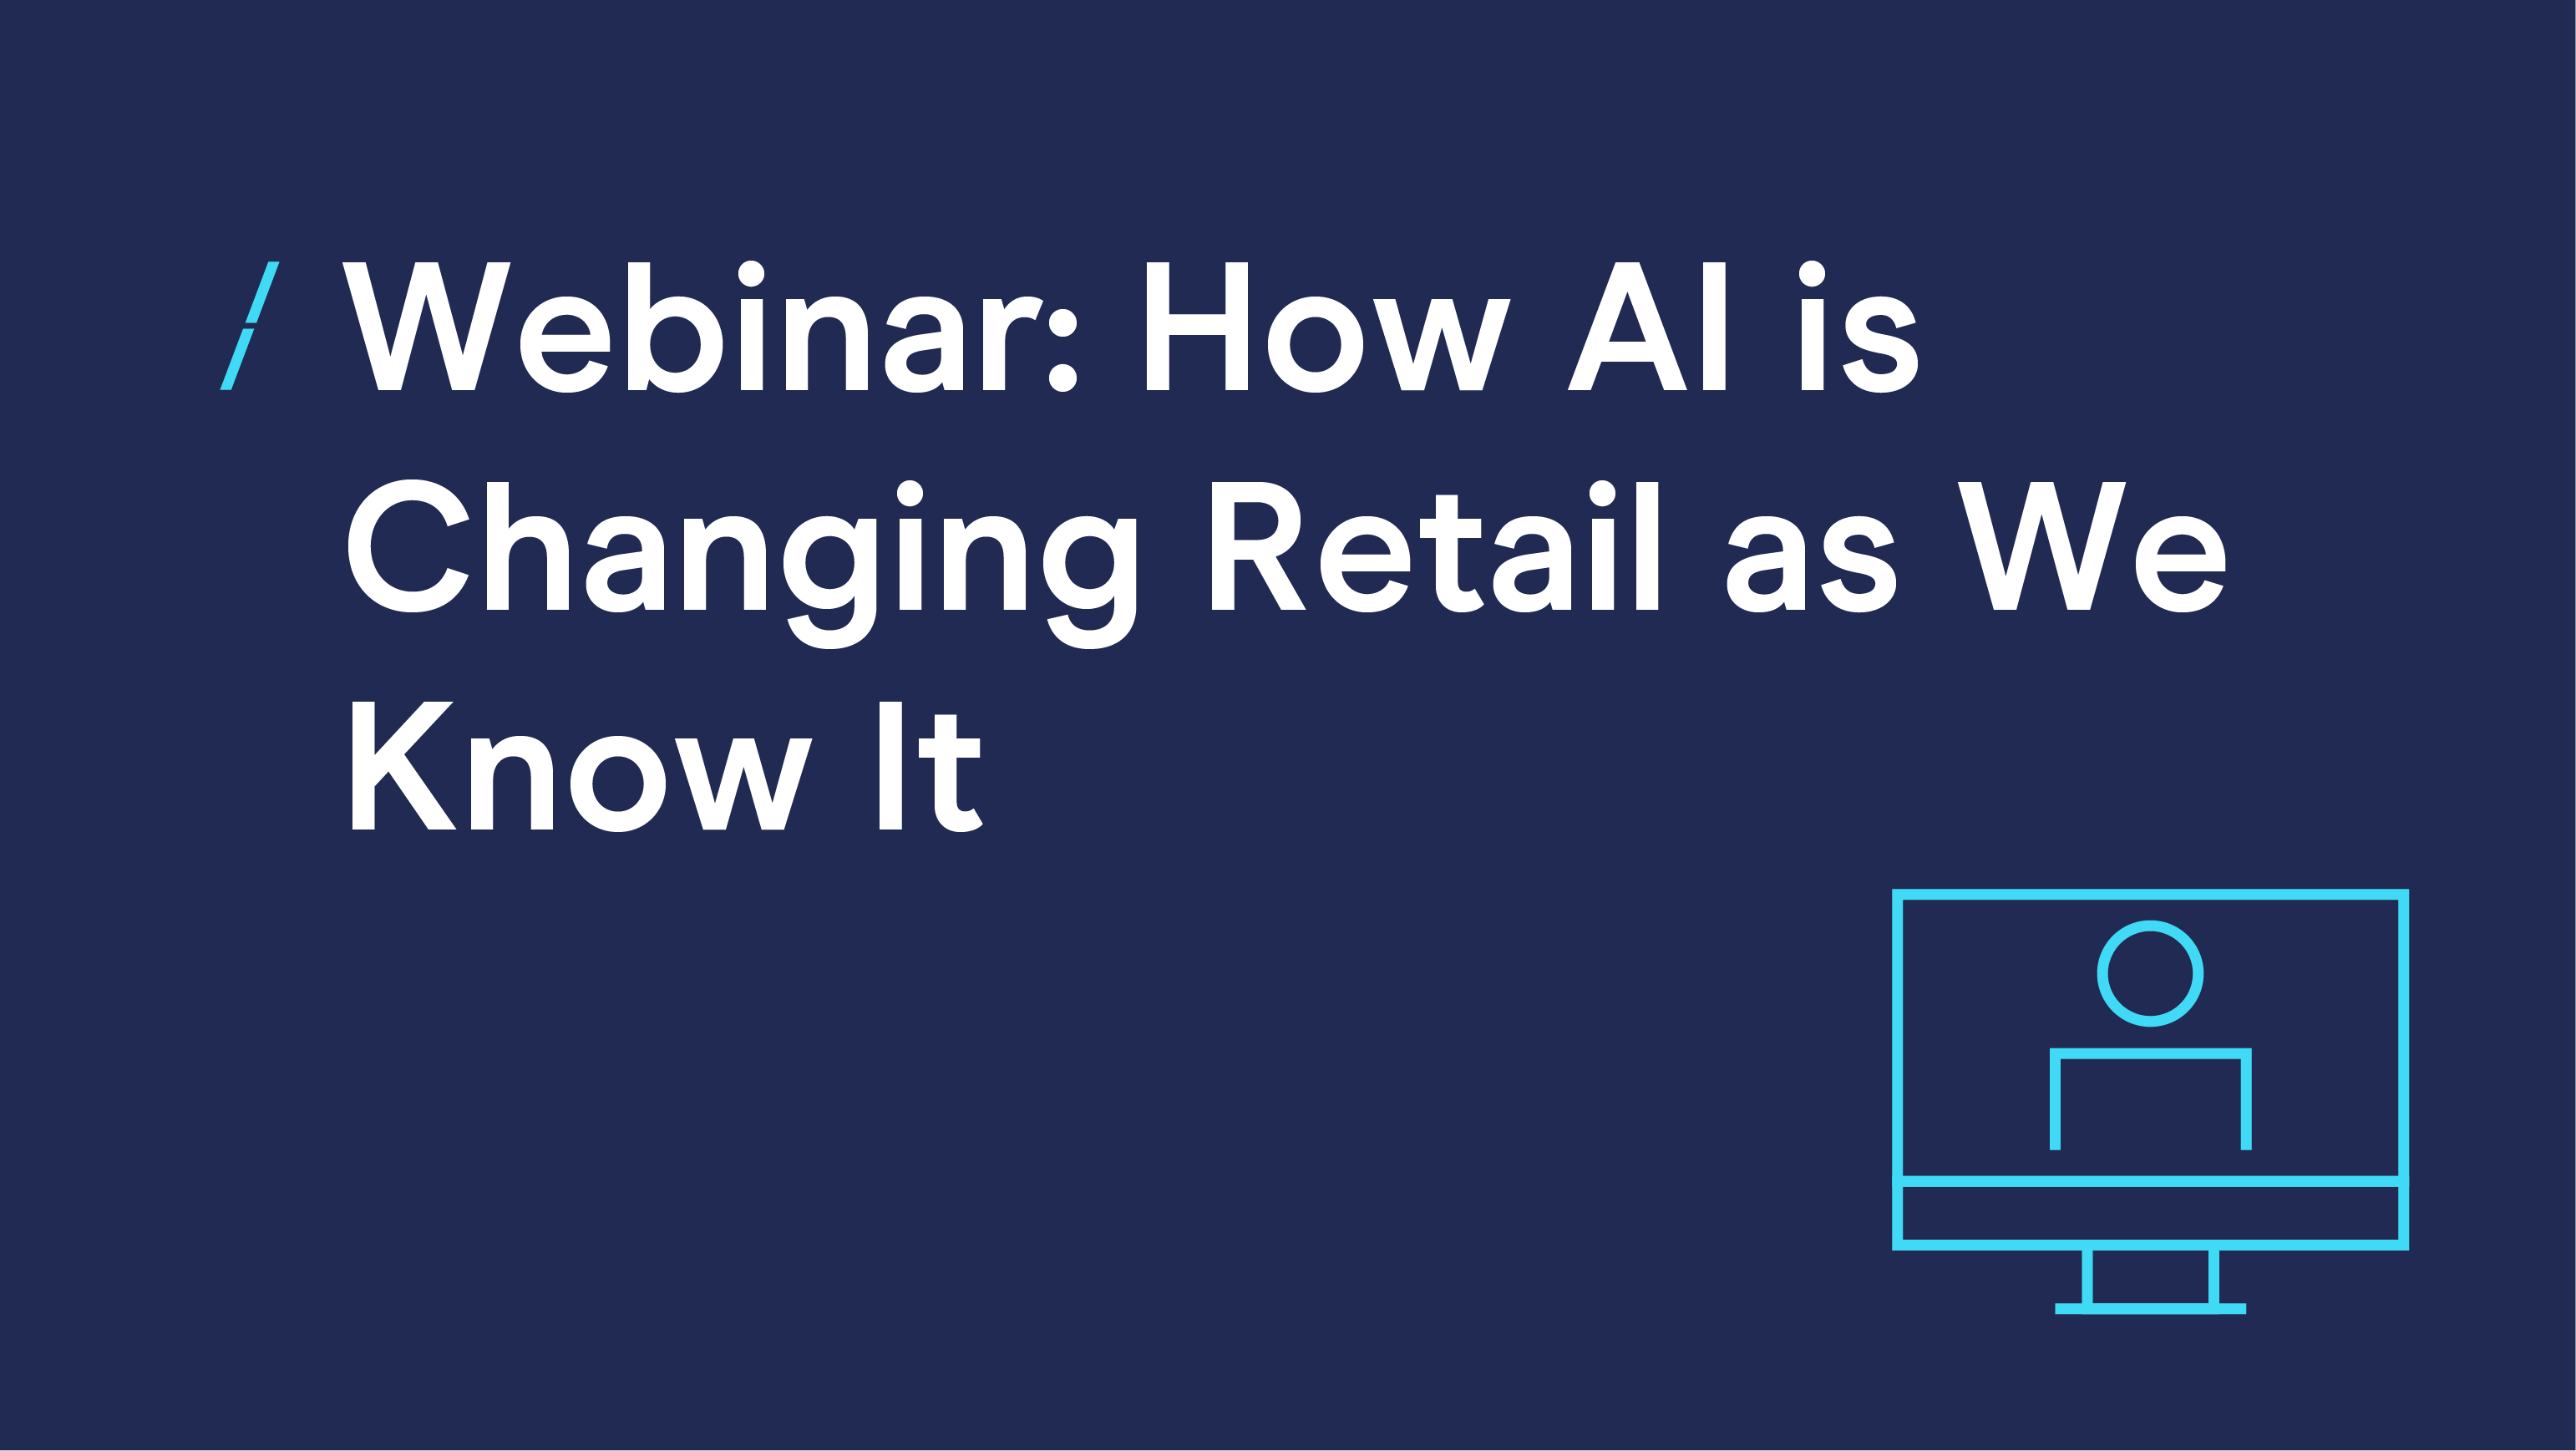 Webinar- How AI is Changing Retail as We Know It _Webinars.png